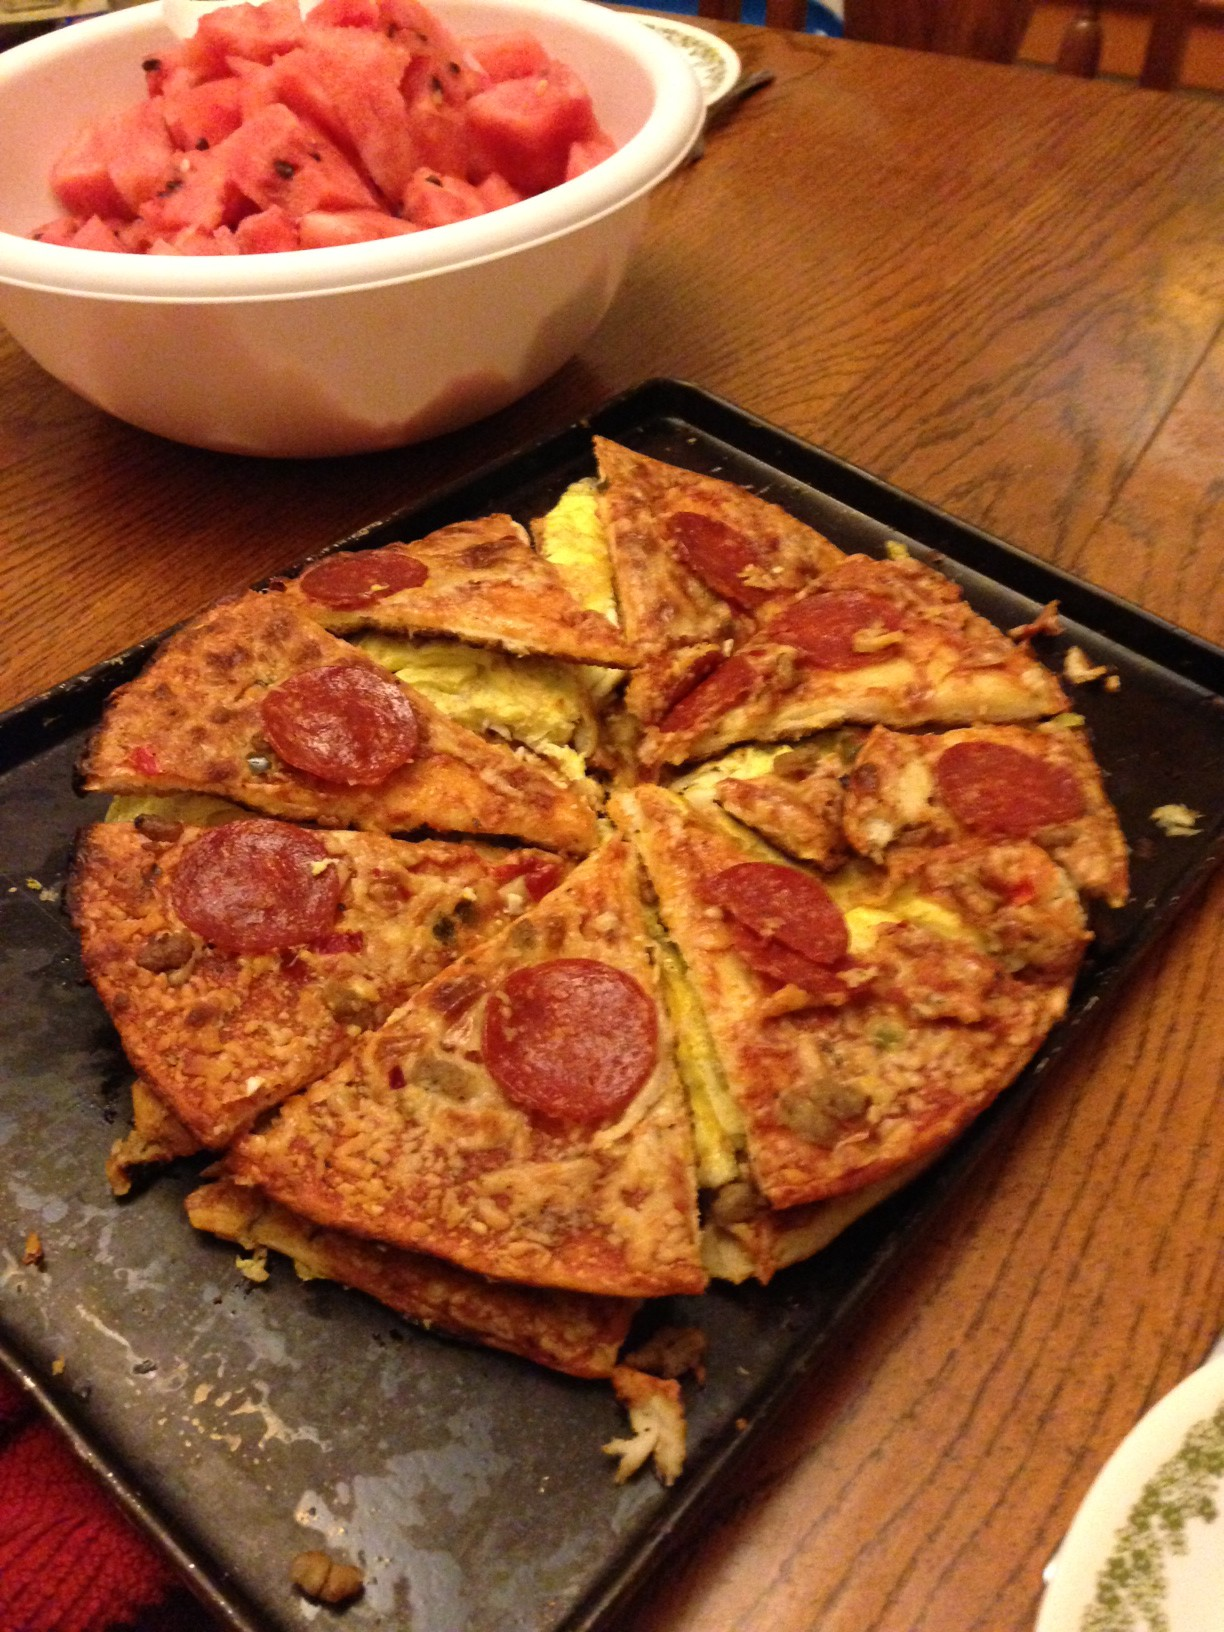 Photo of a pizza